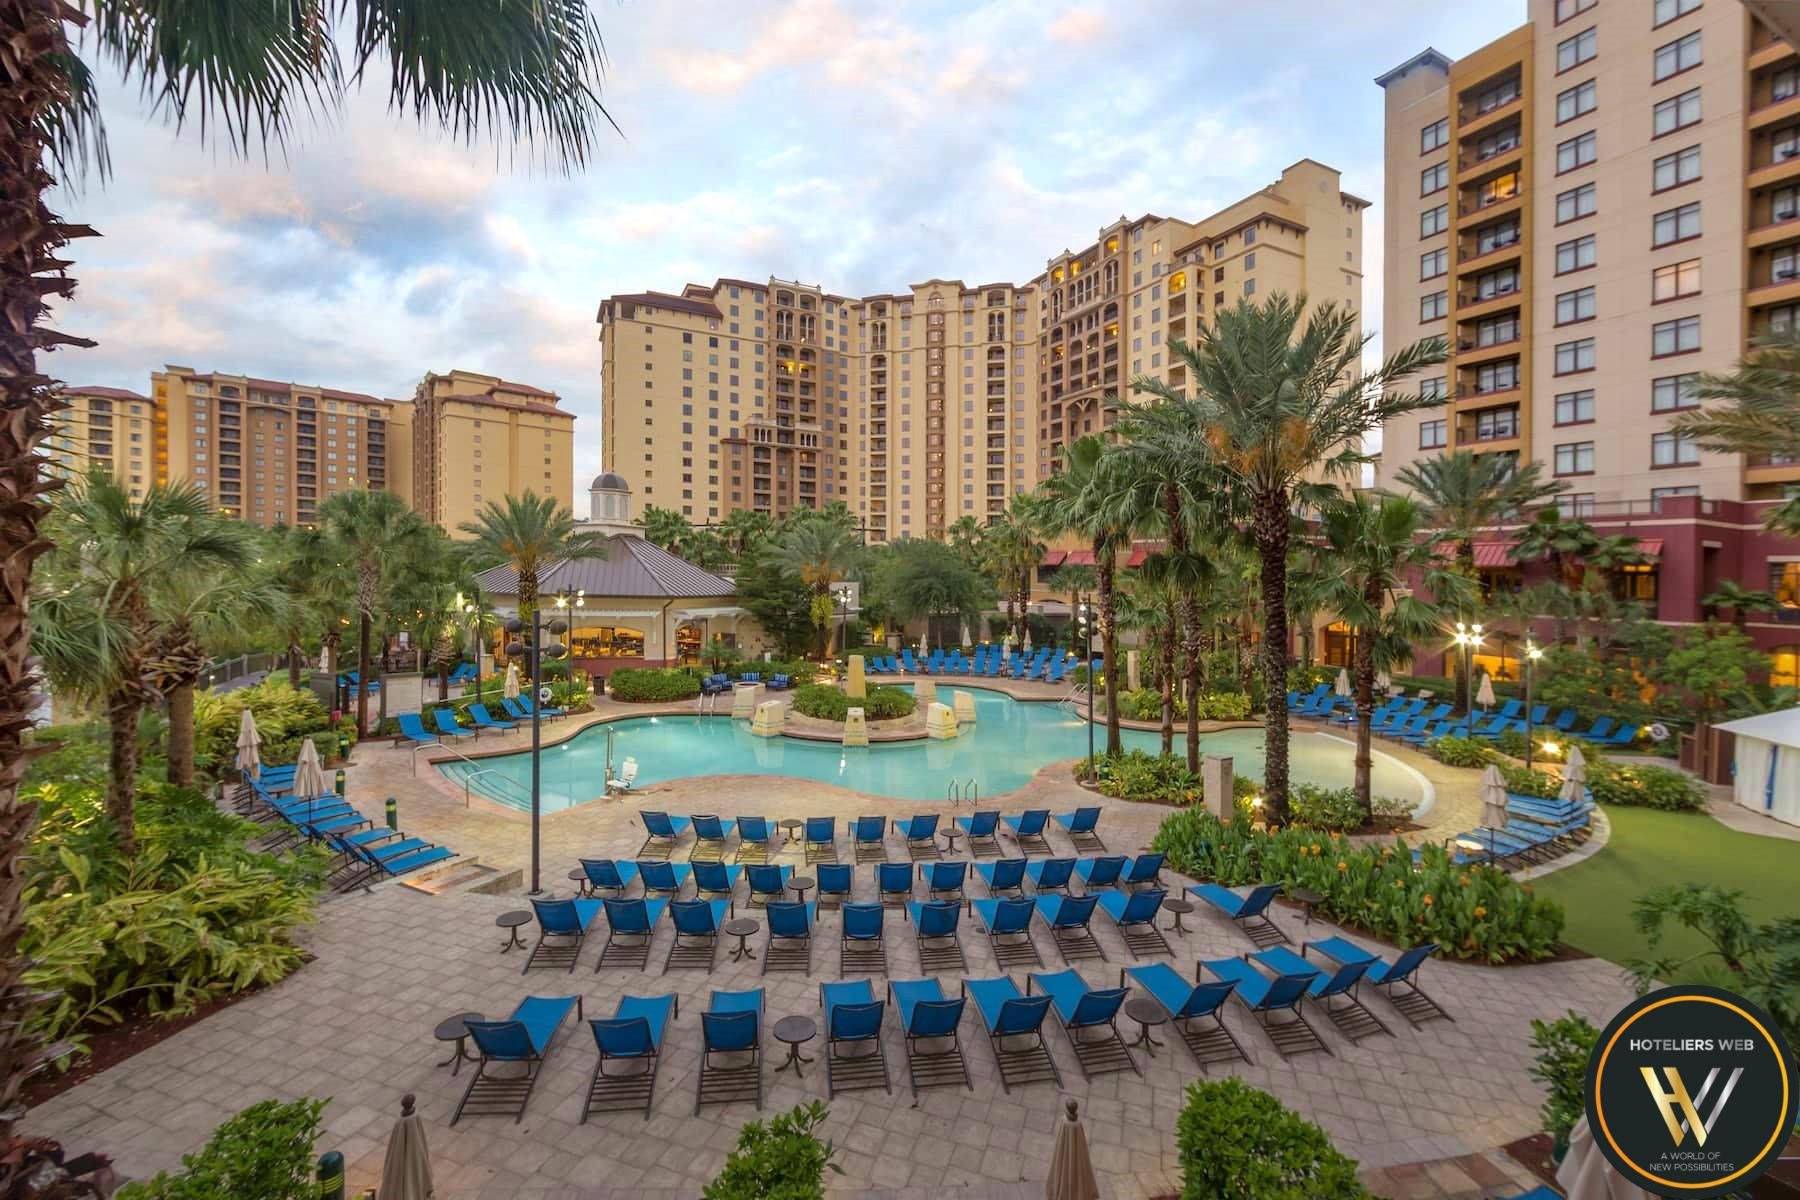 USA TODAY Readers Name Wyndham Rewards Best Hotel Loyalty Program for Fourth Consecutive Year